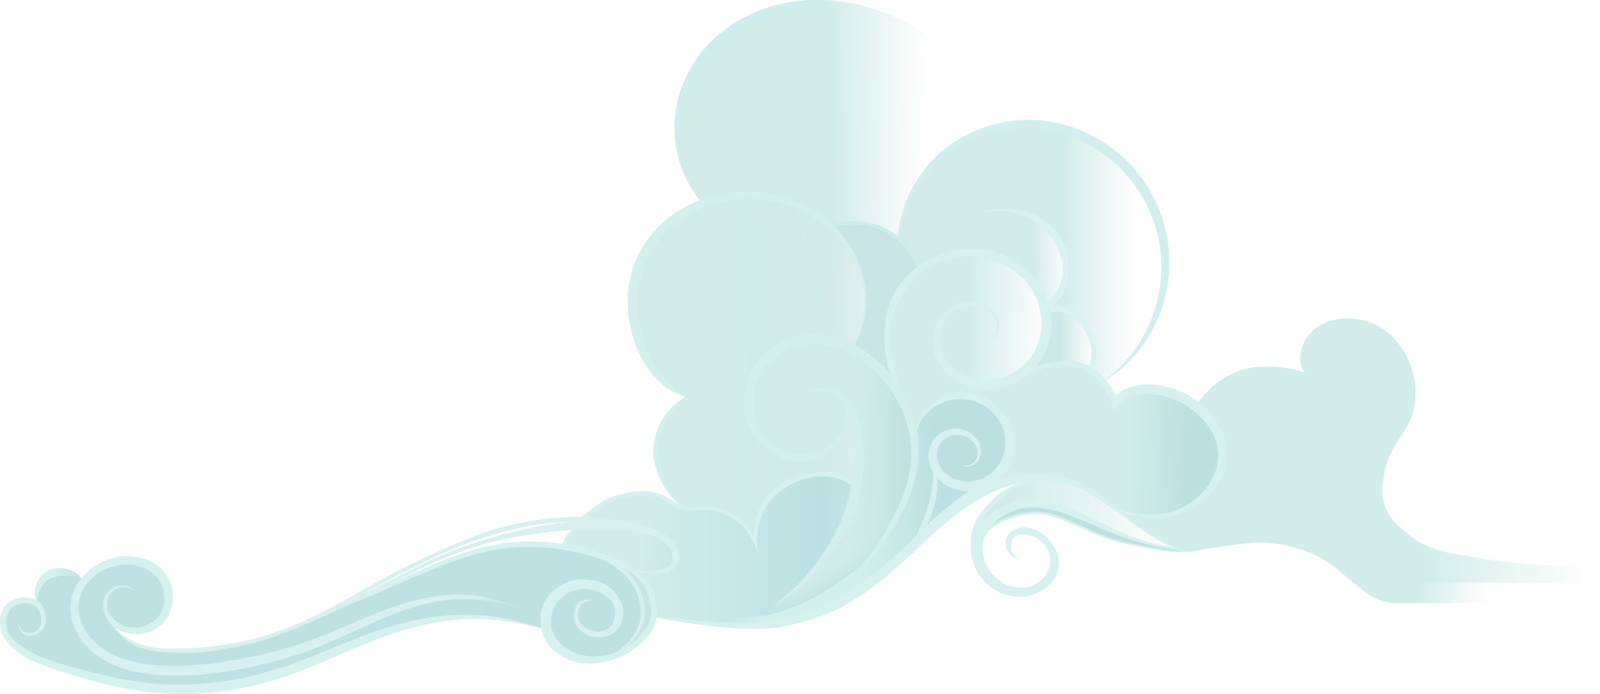 Cloud png vector. Clouds and sky on